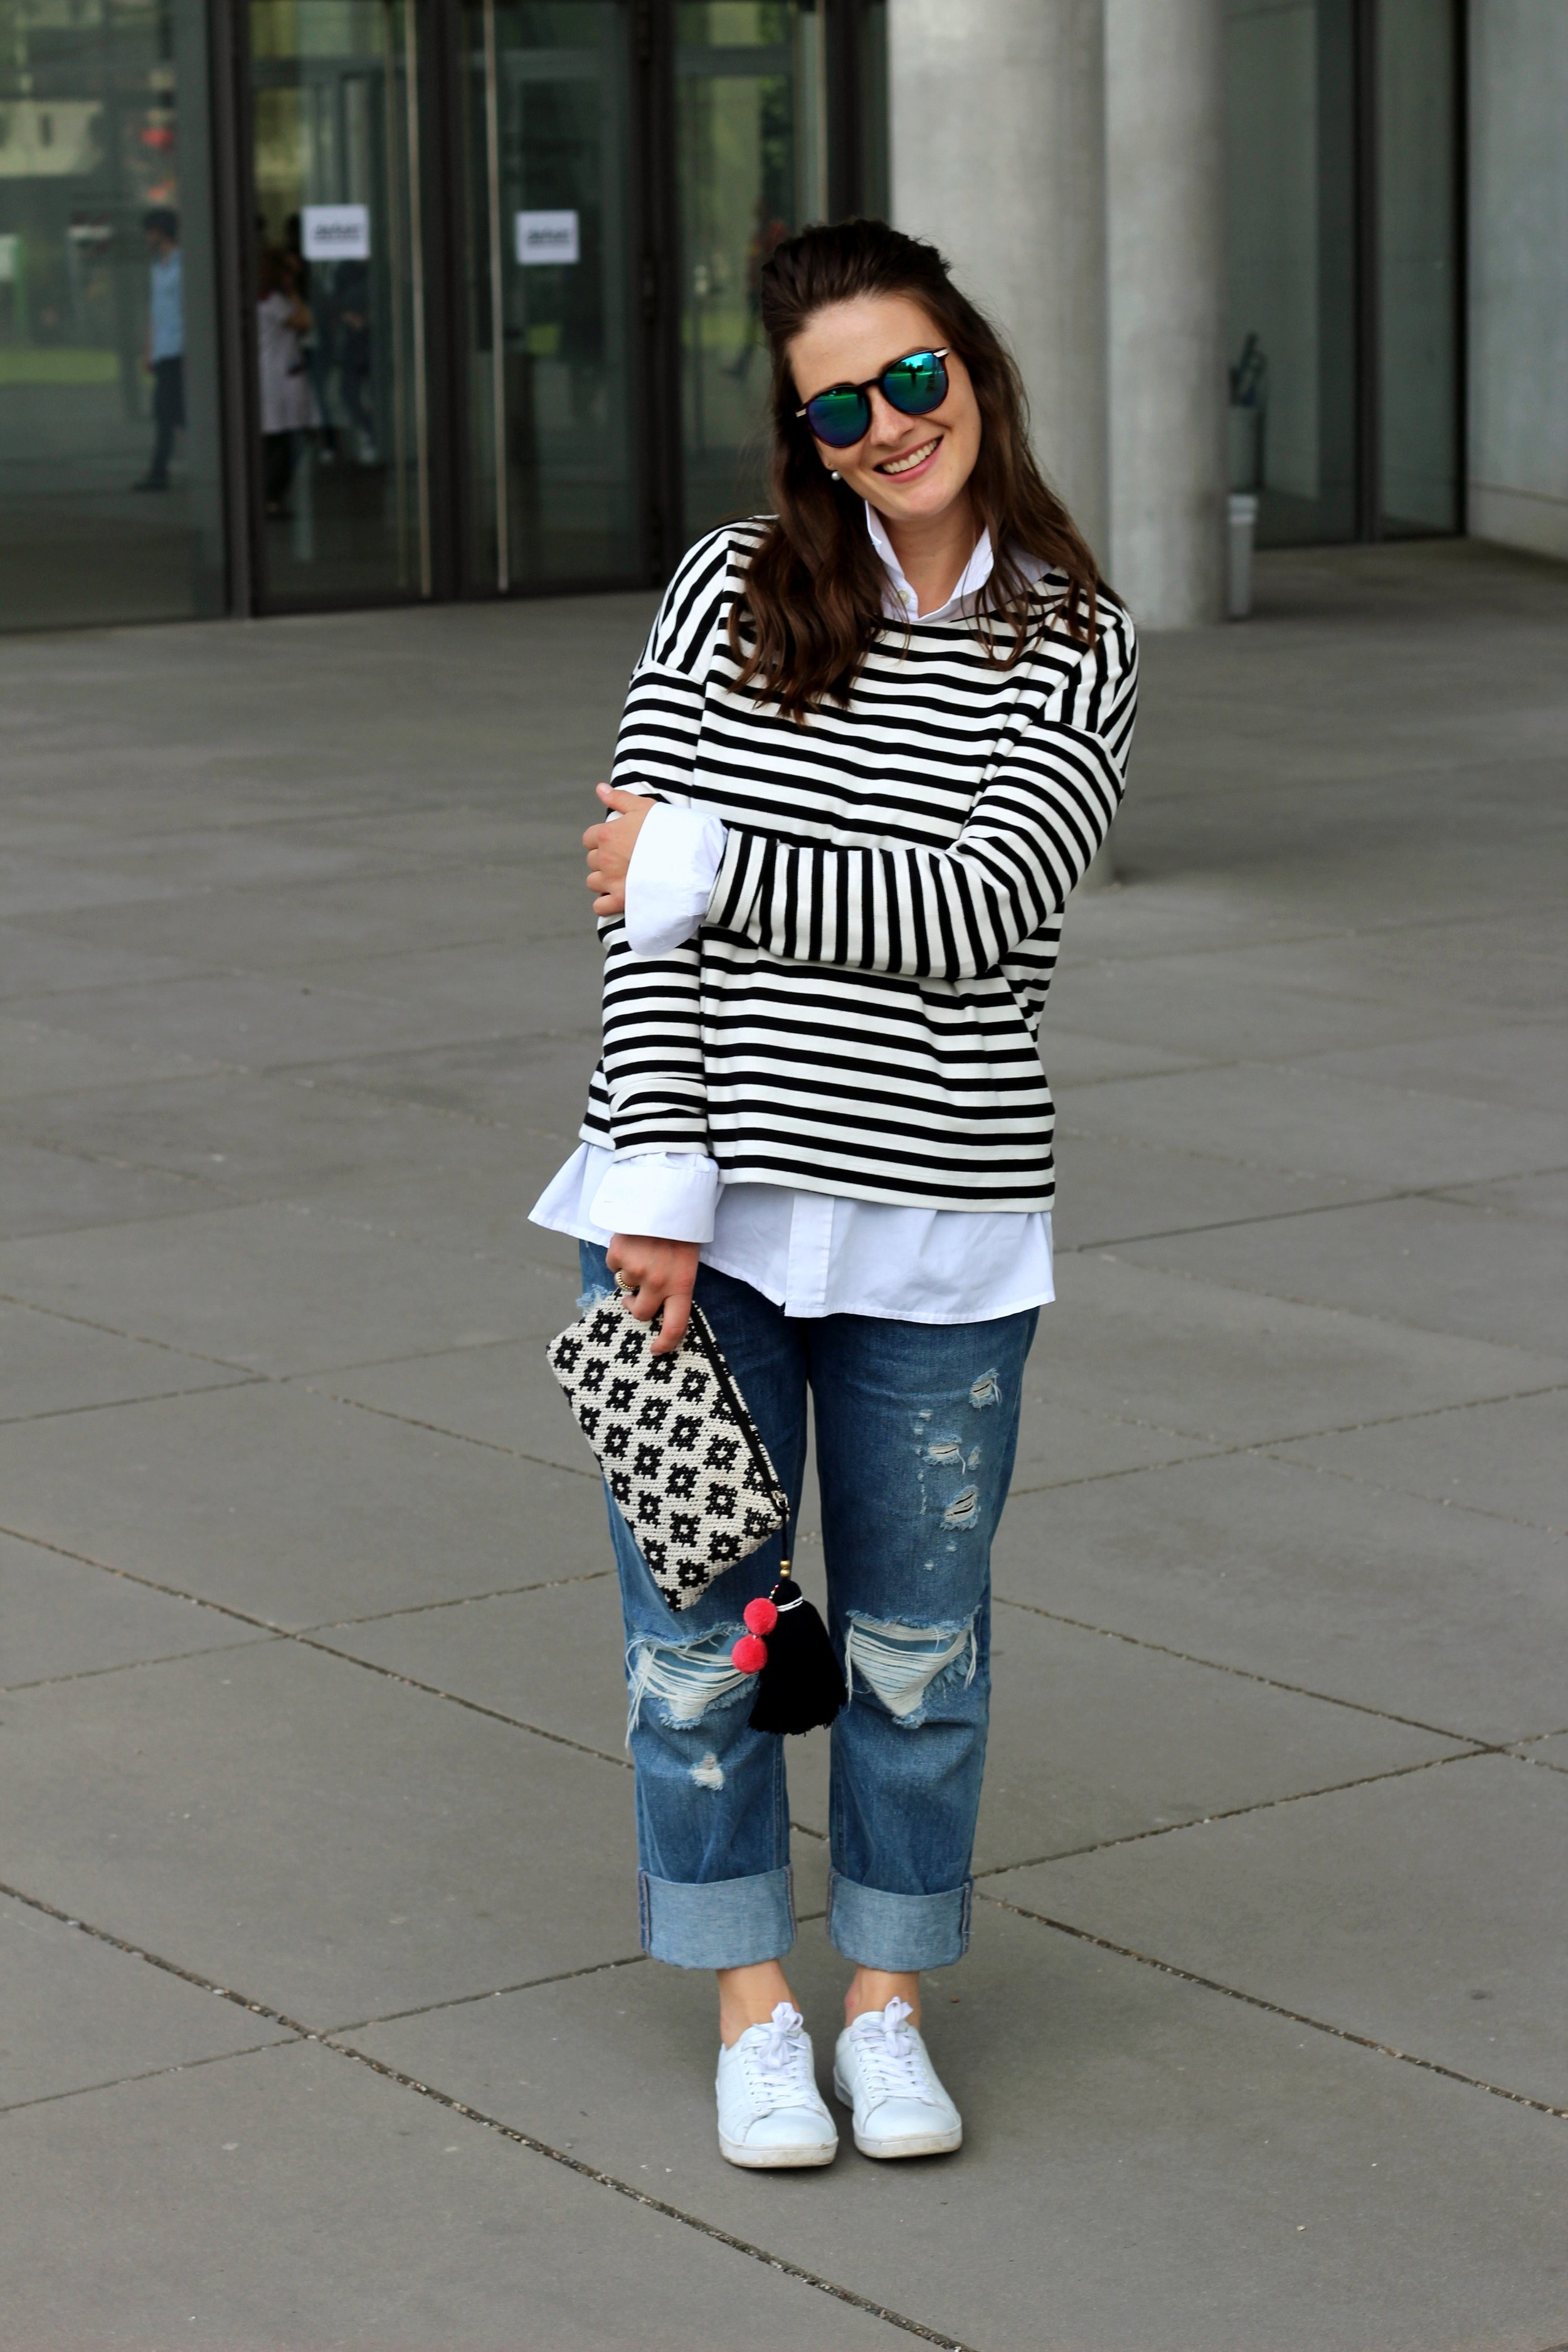 annaporter-classic-outfit-look-jeans-stripes-white-sneakers-asos-mango-clutch-4